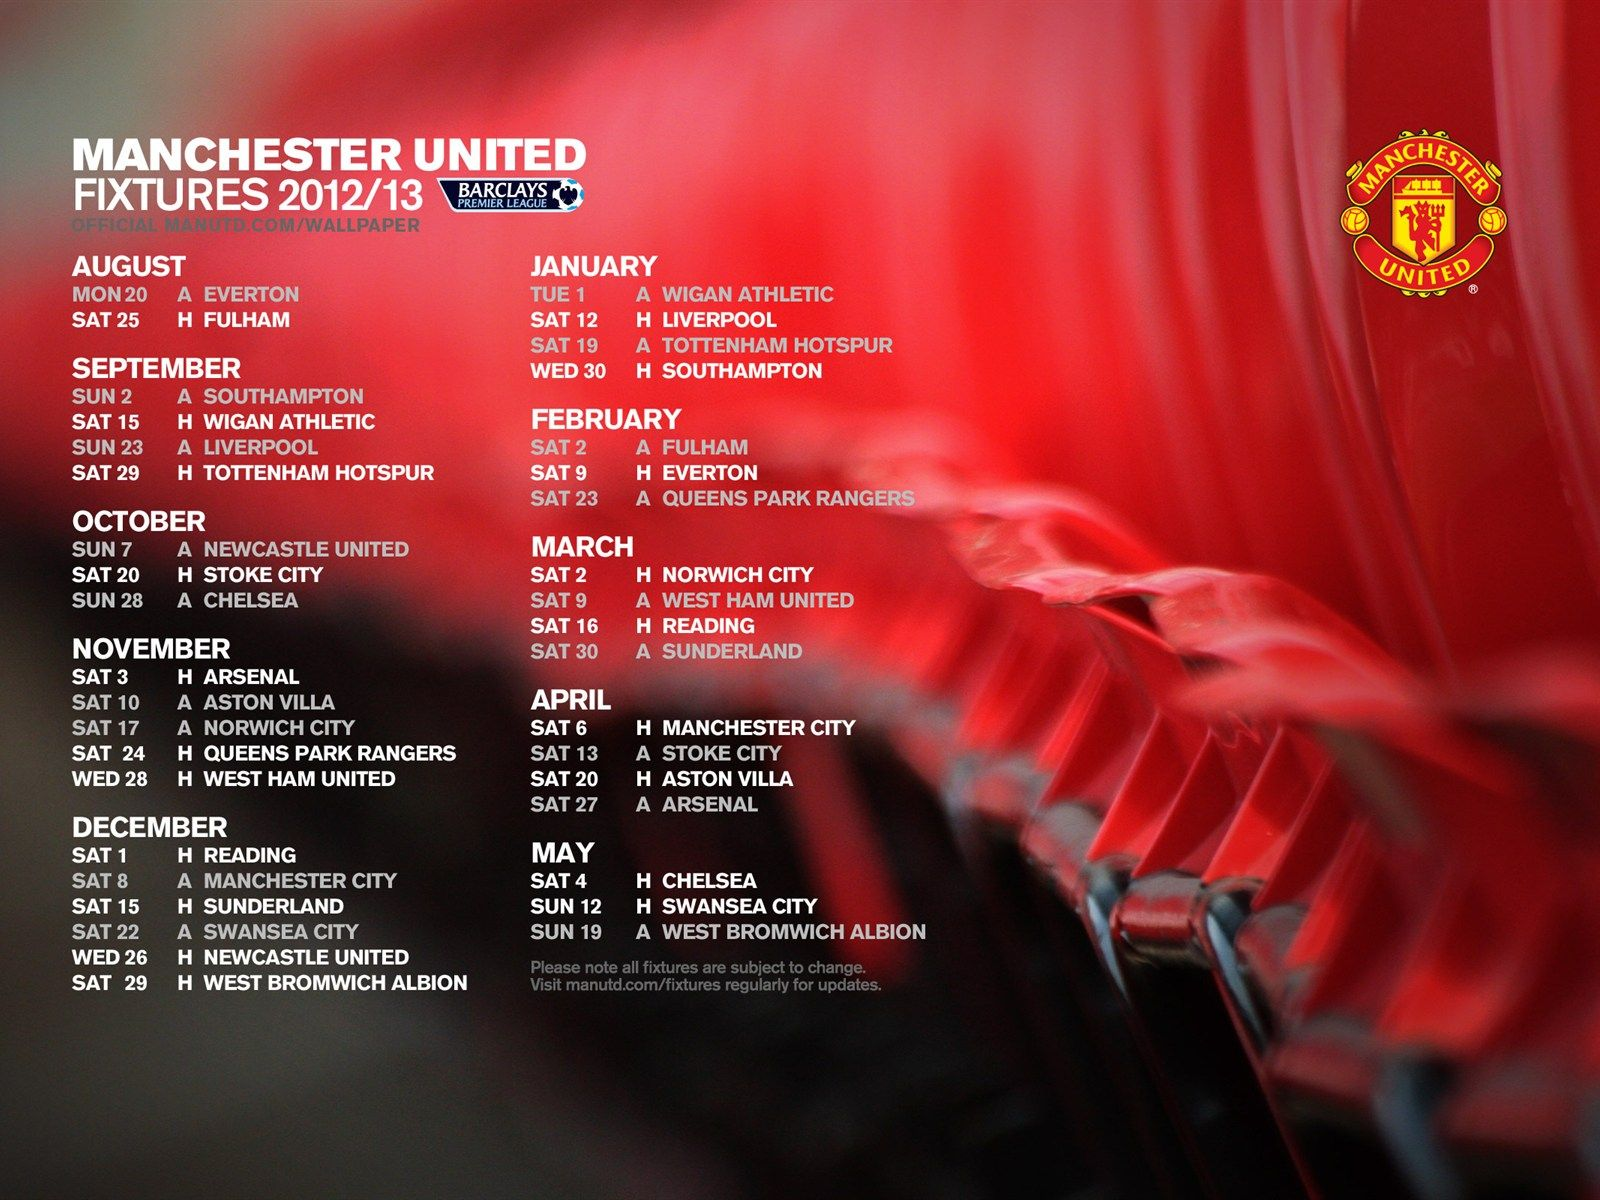 Fixtures List Manchester United Official Manchester United Website Wigan Athletic